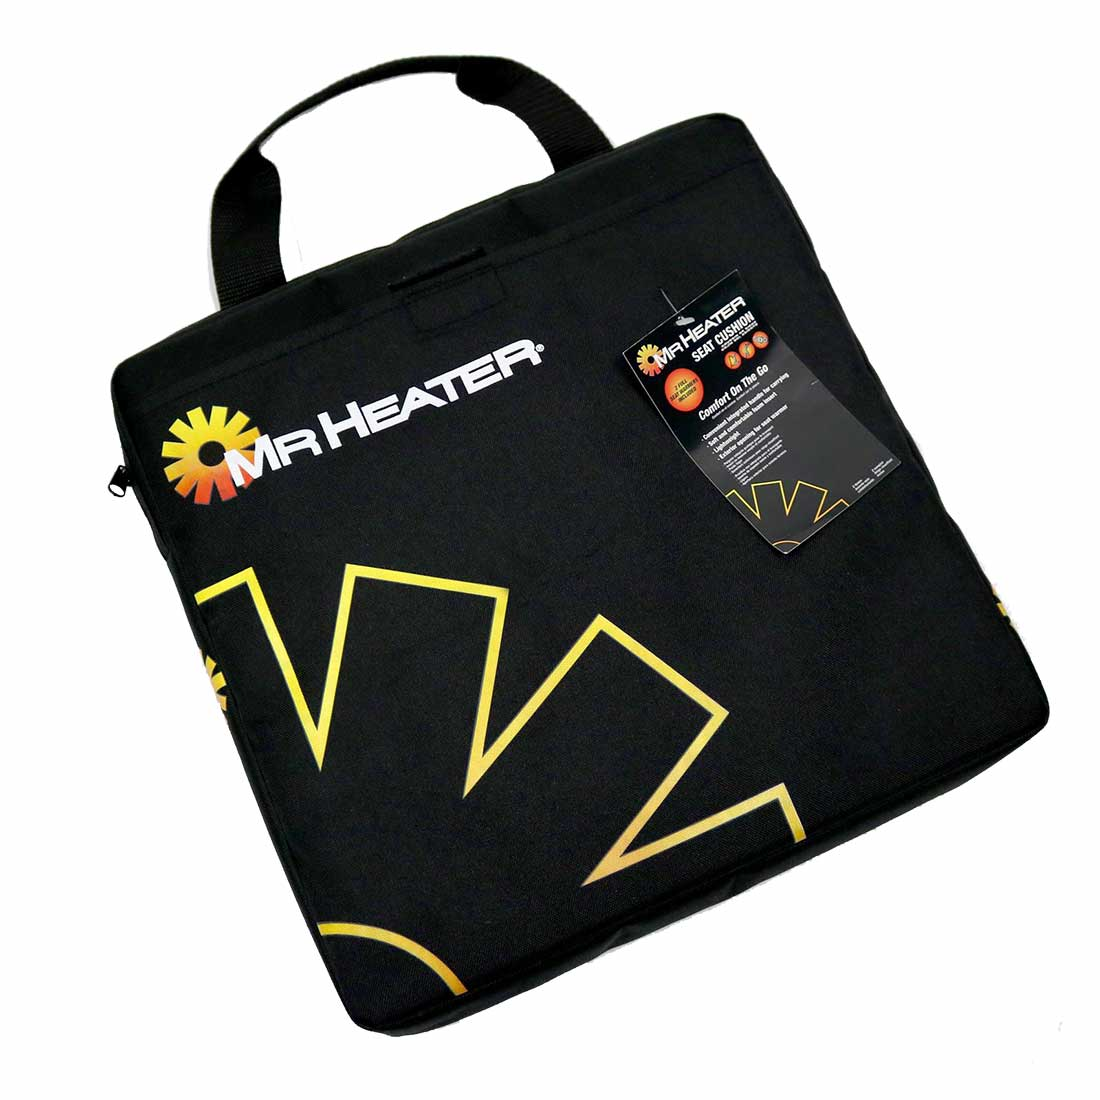 Mr Heater Portable Seat Cushion with Warmer Pocket